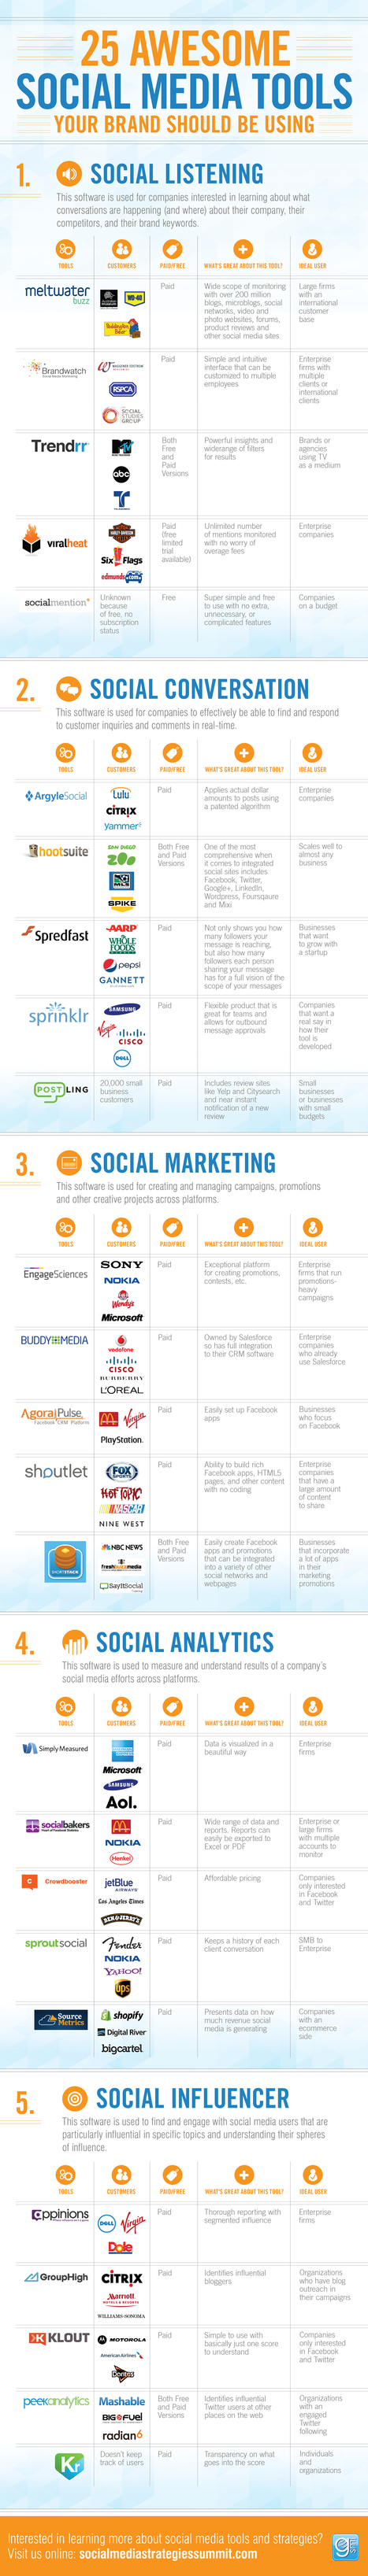 25 Awesome Social Media Tools Your Brand Should Be Using [INFOGRAPHIC] | I am a Bridge Clipboard | Scoop.it